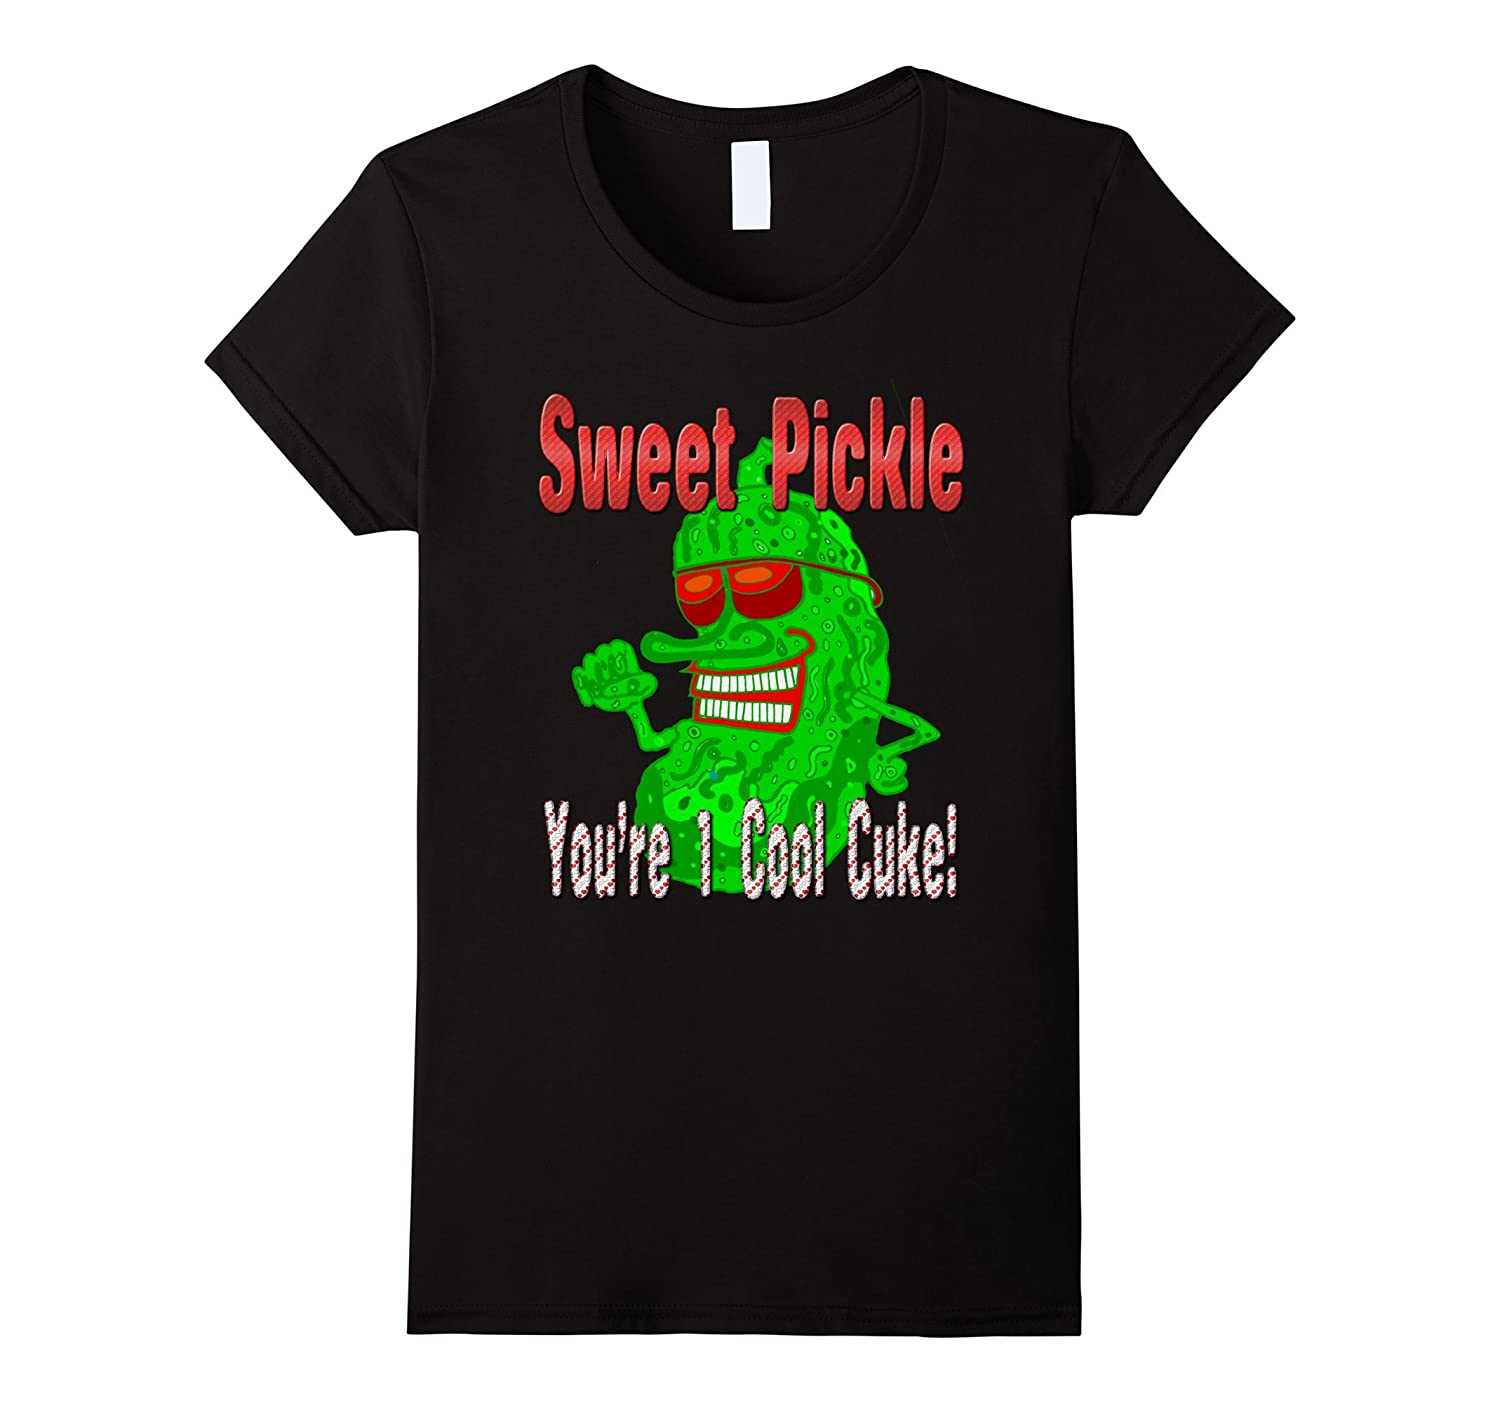 FUNNY BIG DILL PICKLE VALENTINE PARTY 'COOL CUKE' T-SHIRT